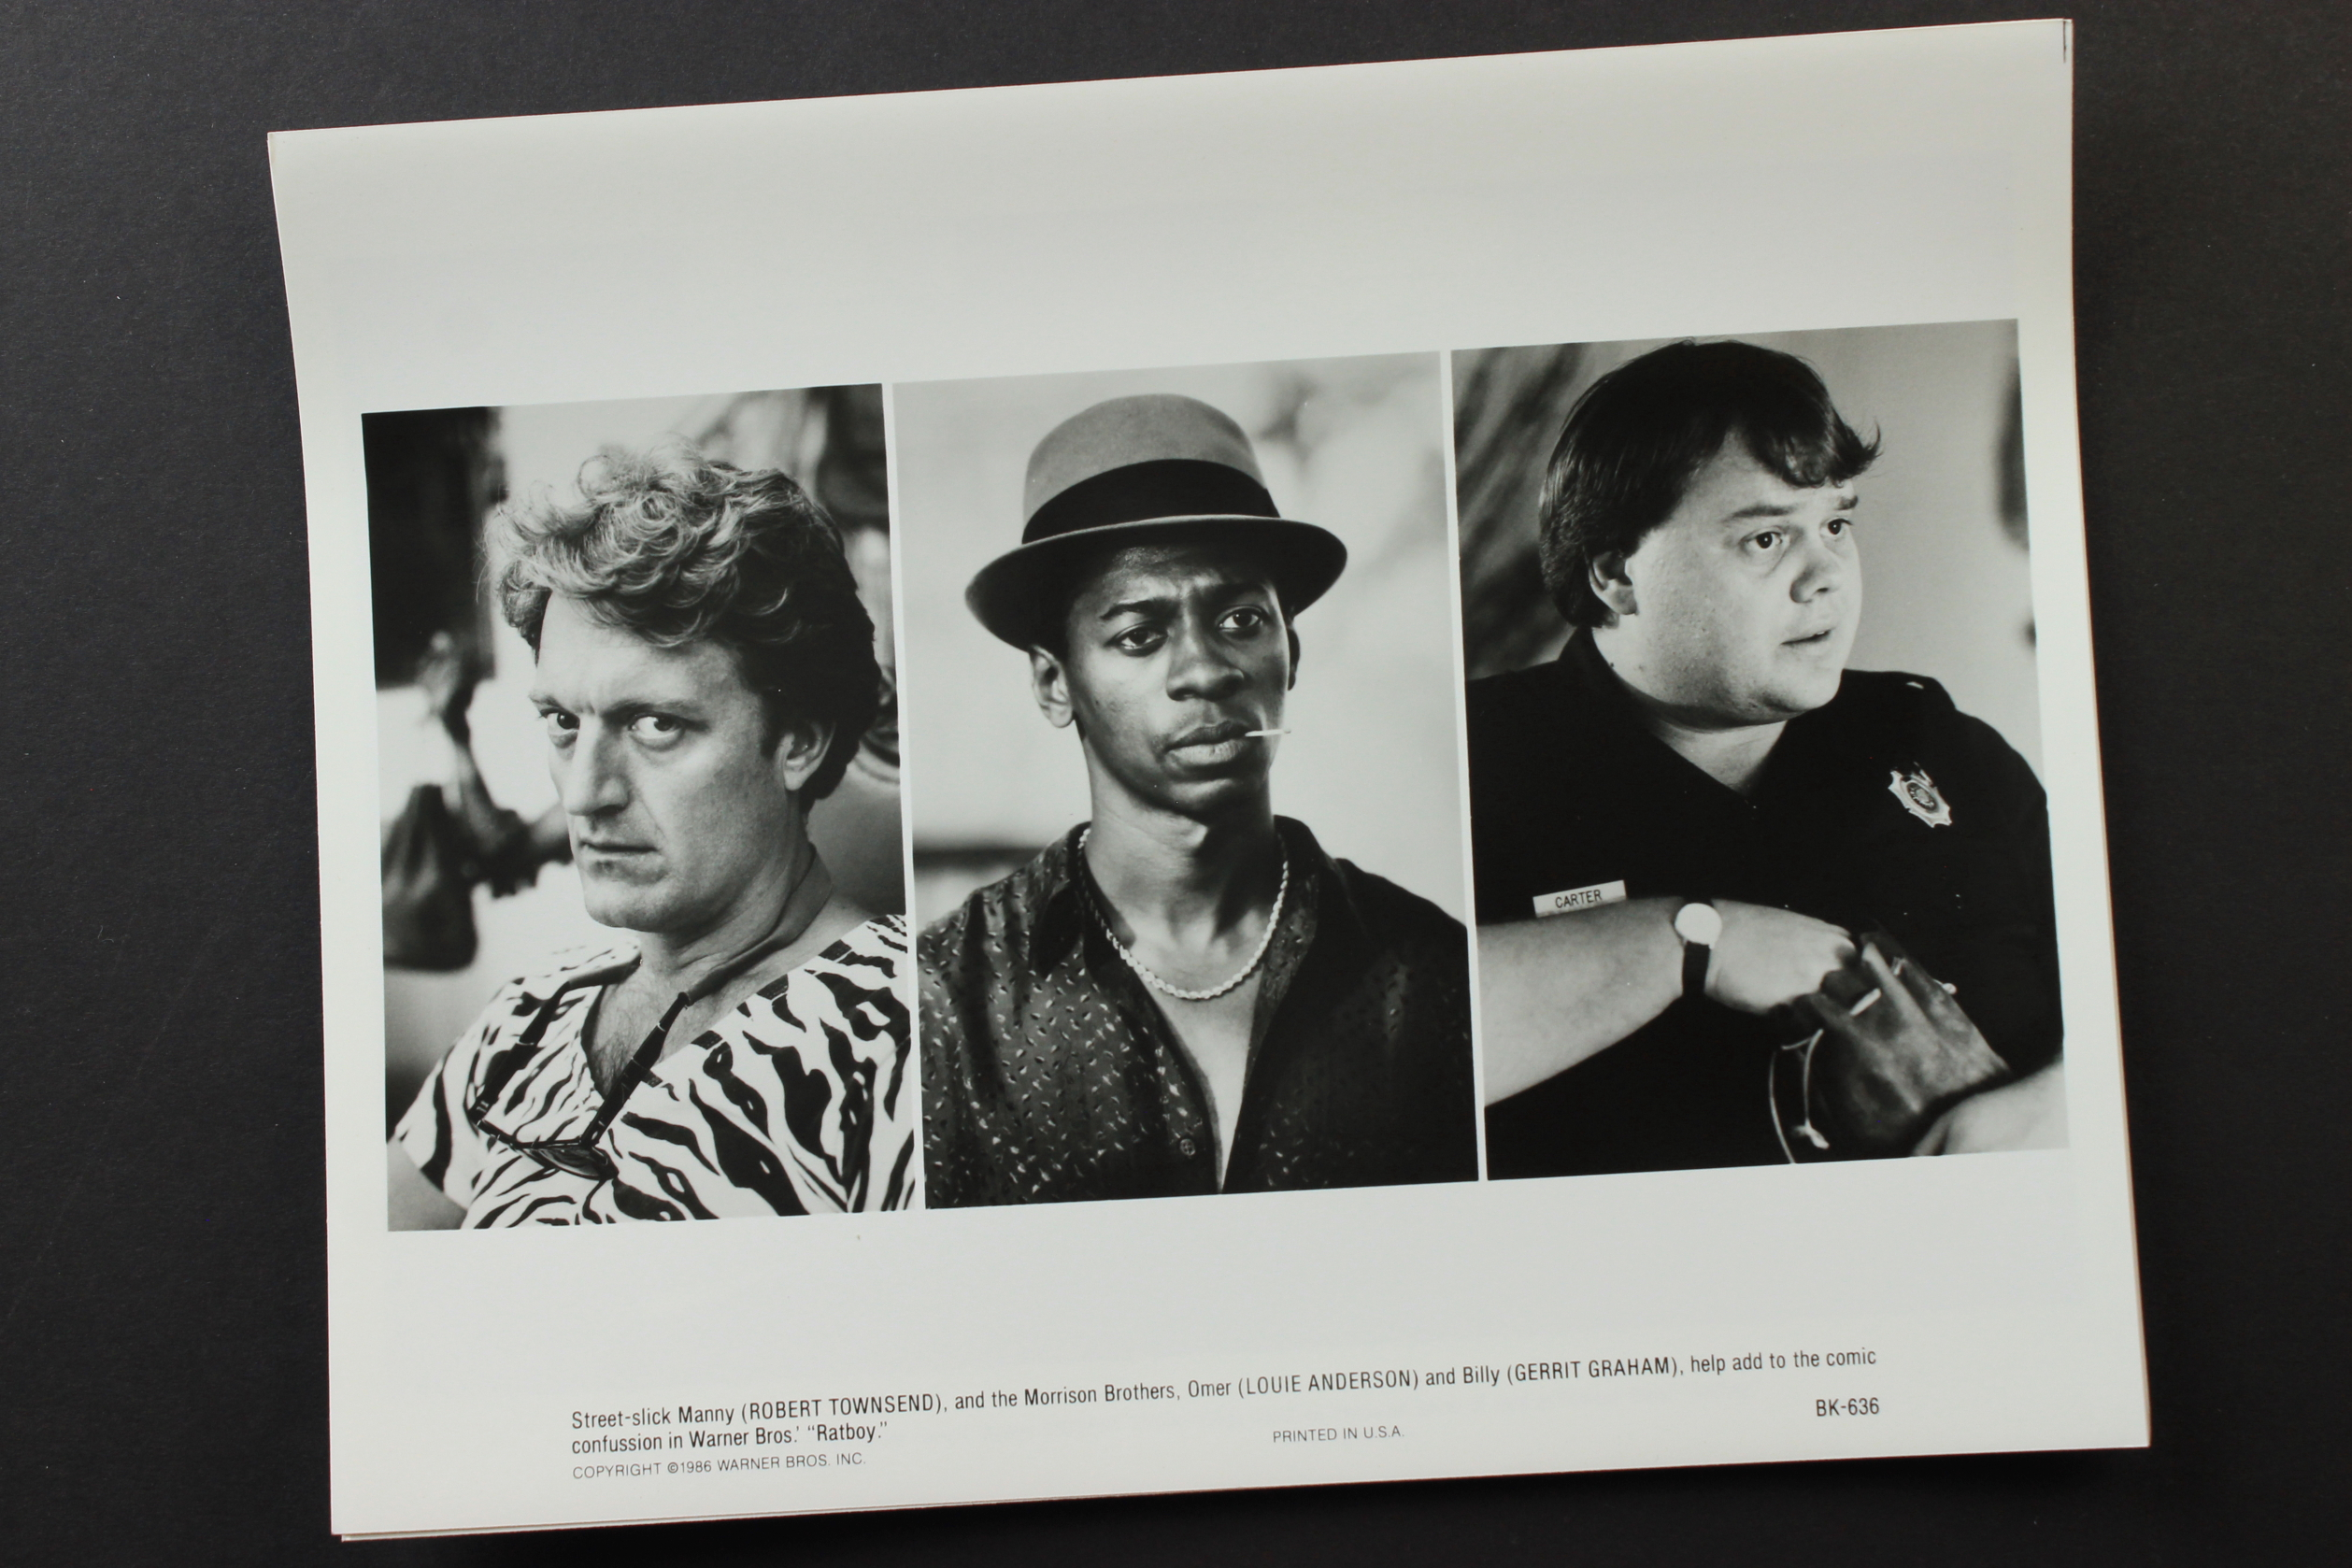 Louie Anderson, Gerrit Graham, and Robert Townsend in Ratboy (1986)